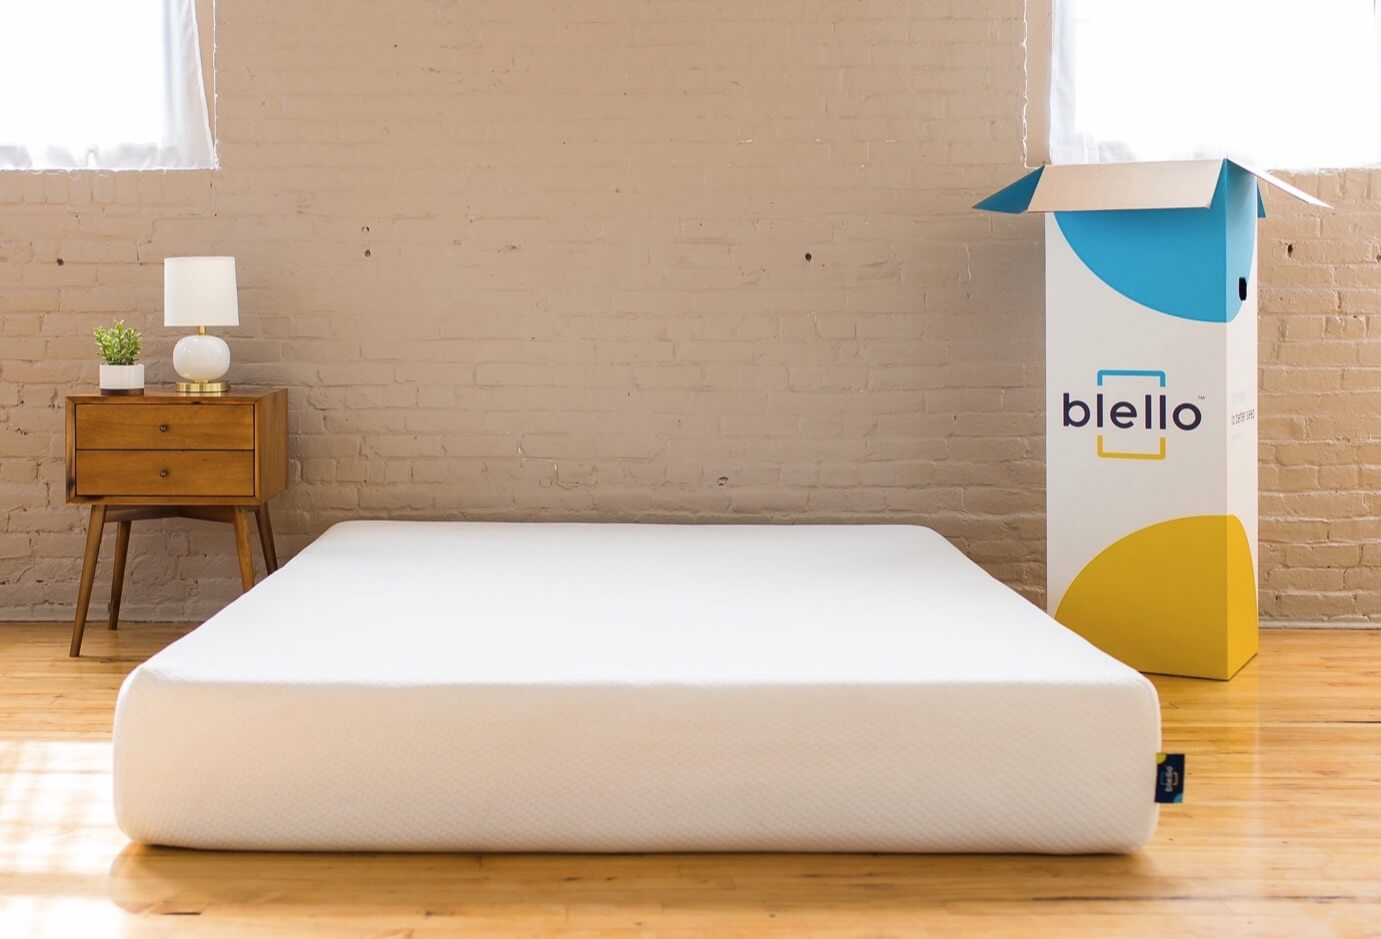 The Blello mattress in a bedroom